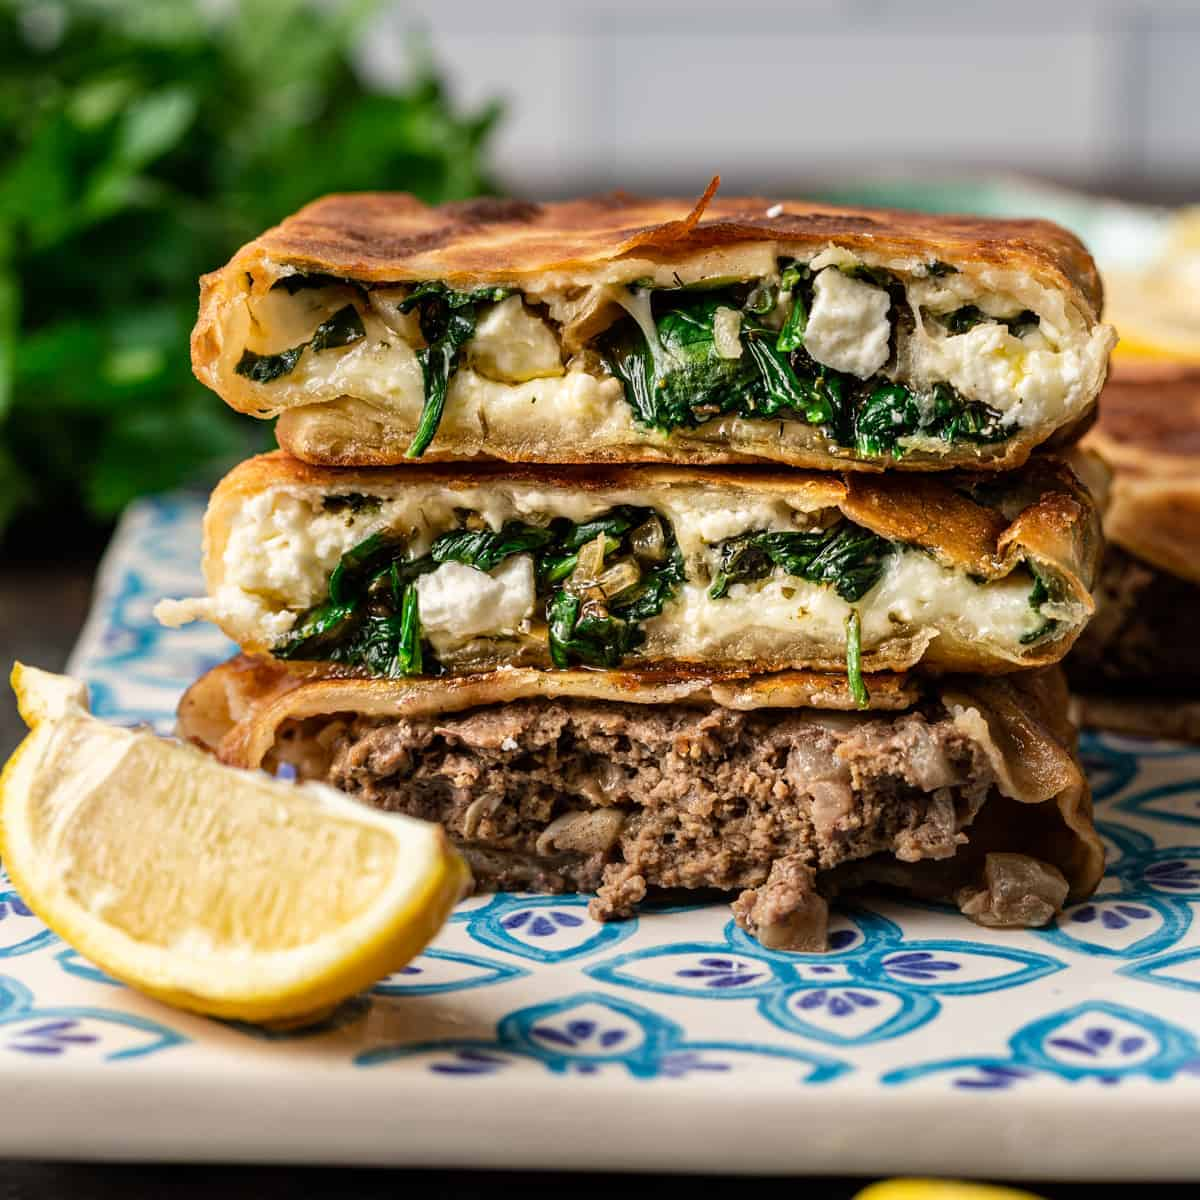 Three Gozleme (Turkish Stuffed Flatbread) stacked on decorative square plate